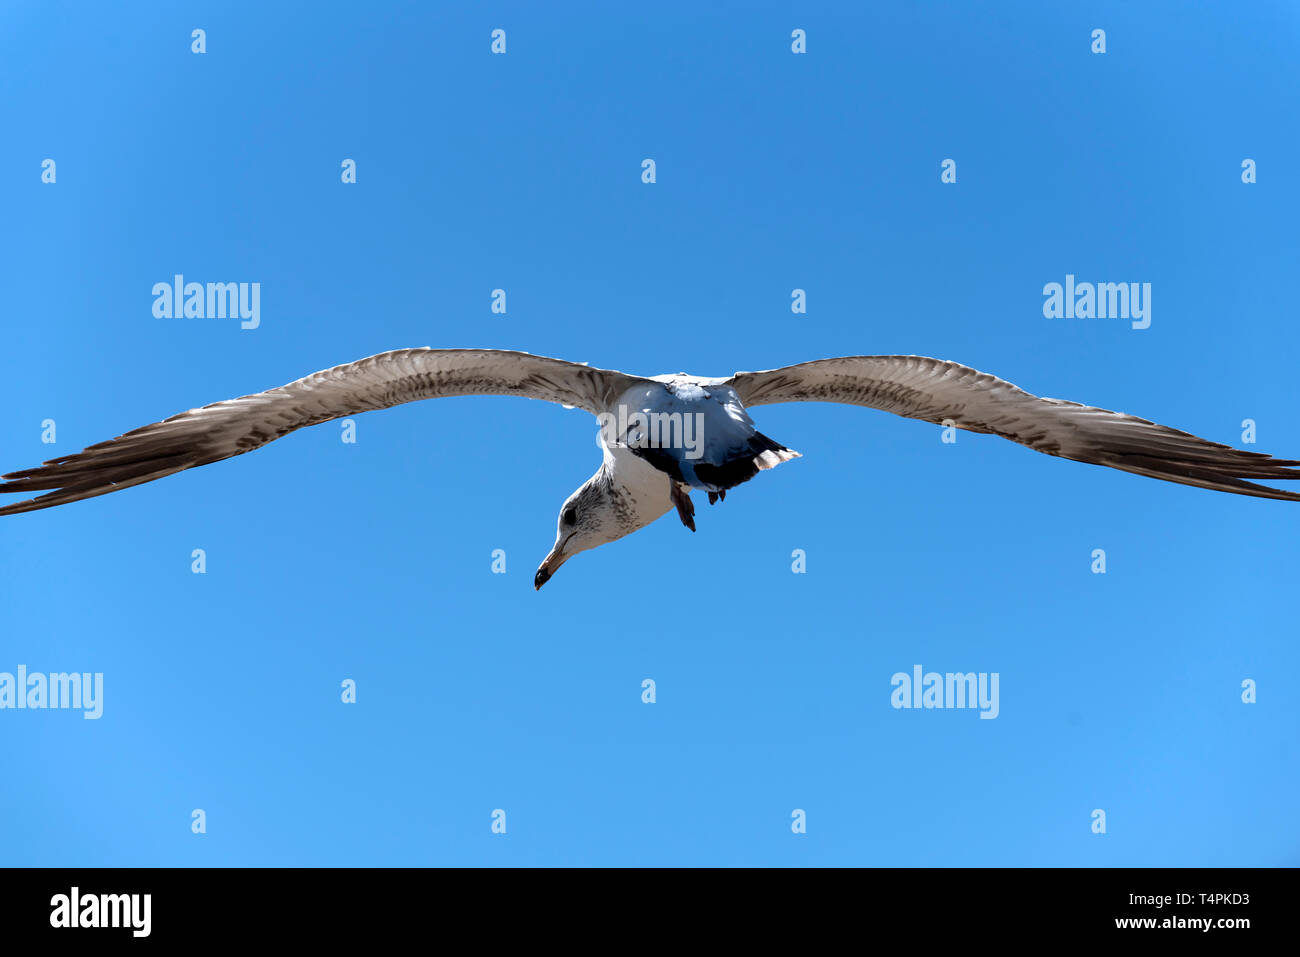 An extreme closeup of a seagull in flight - Stock Image